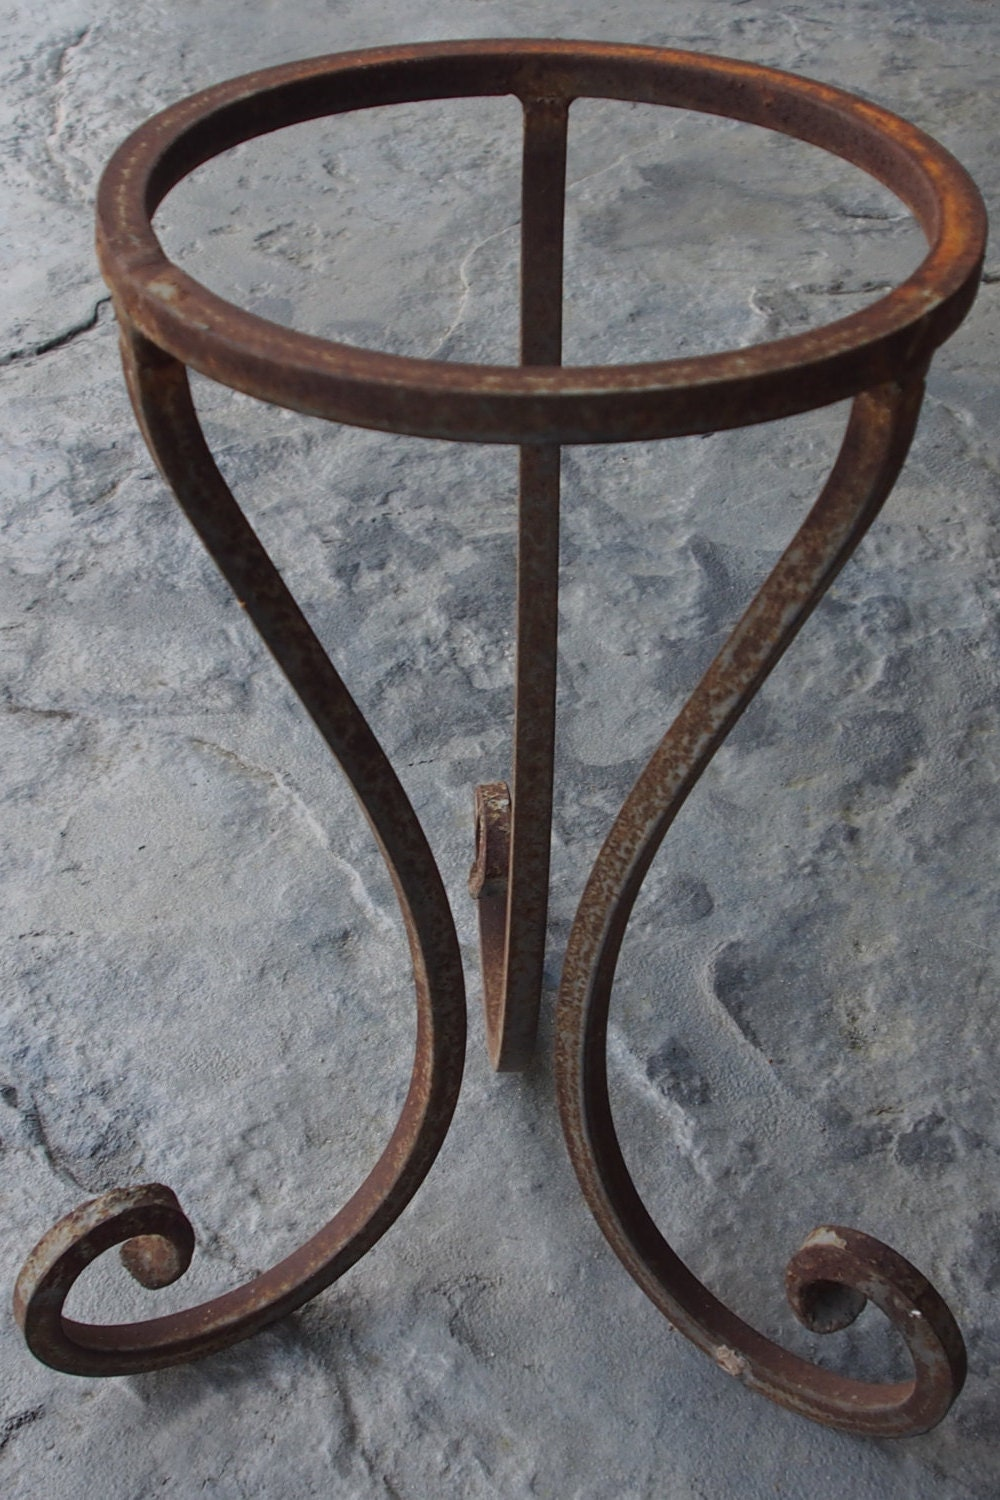 Iron Table Legs : Iron table legs metal table legs 16 tall rustic by limegreyhouse